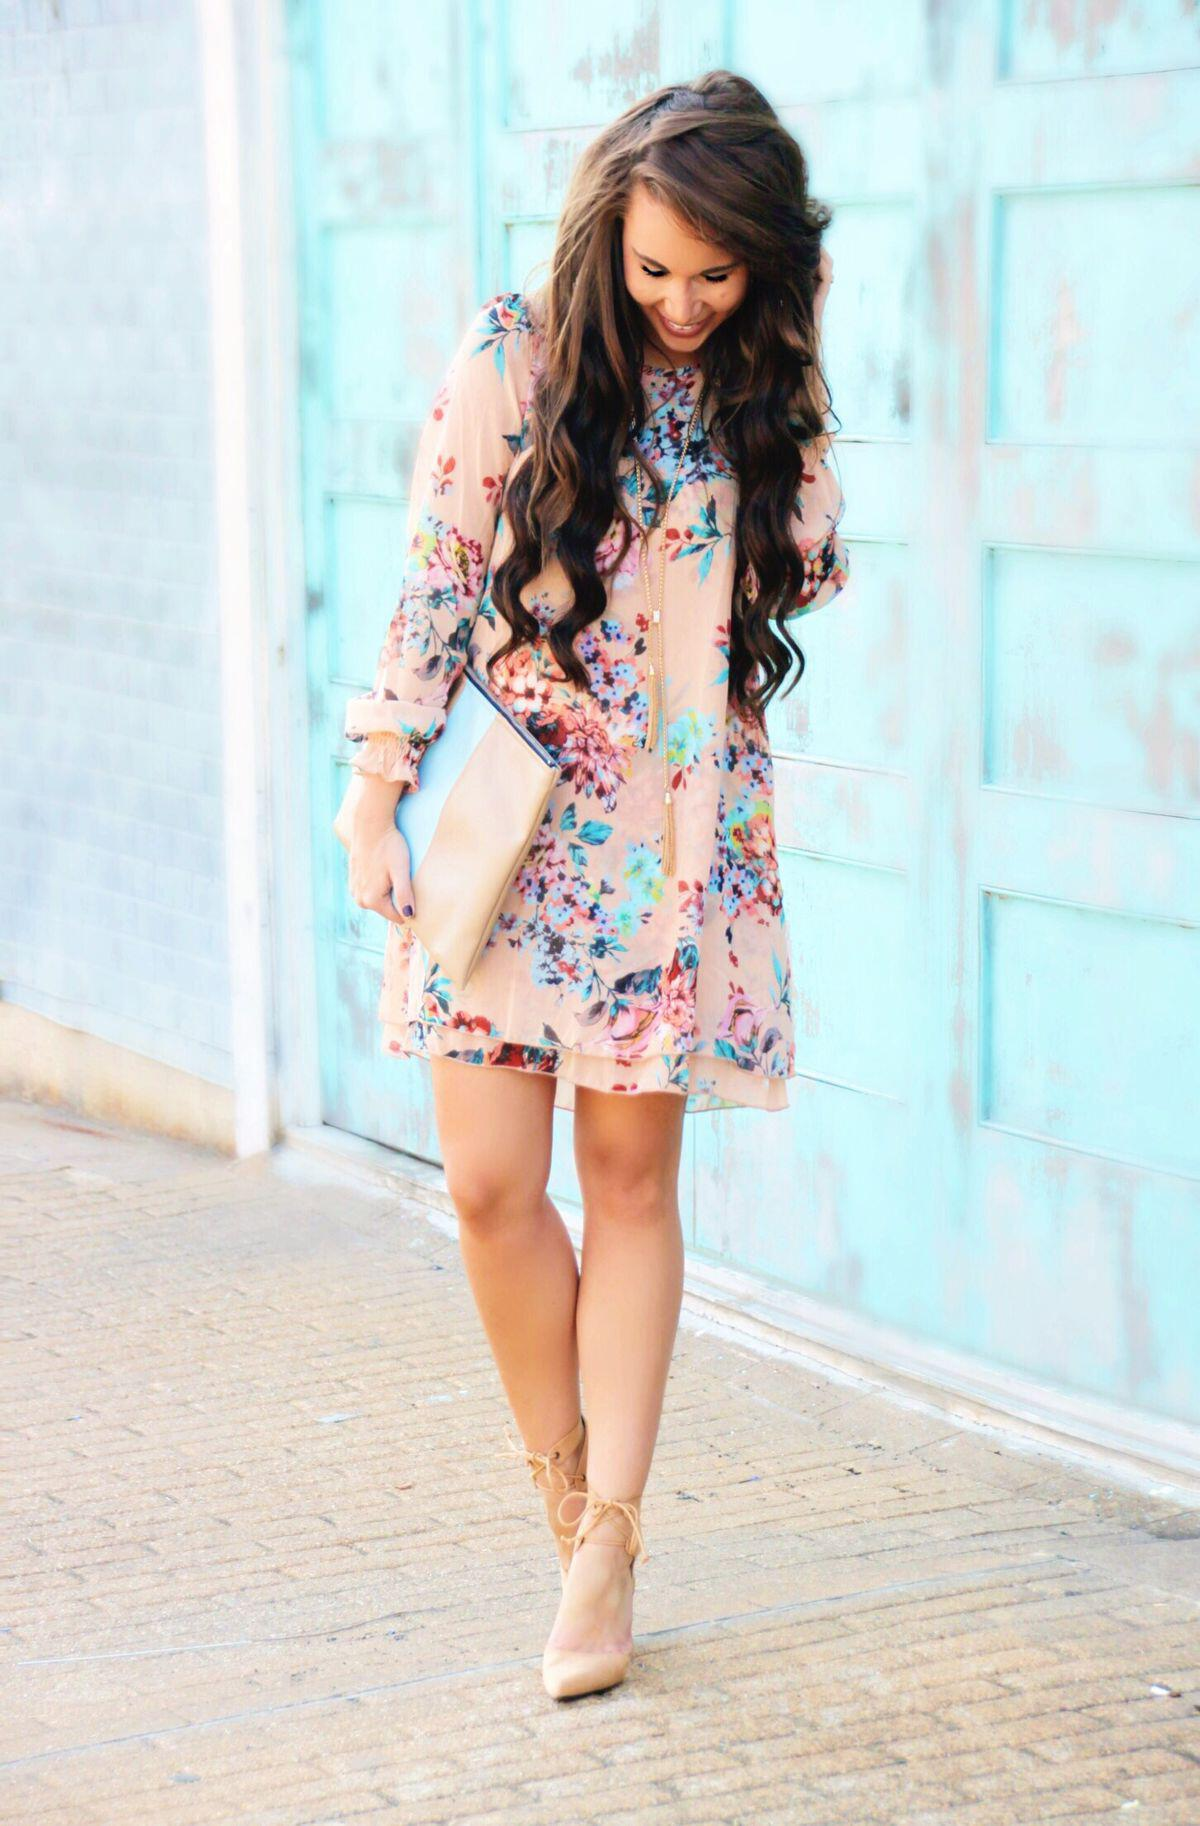 7 inspiring easter outfits with dresses and skirts for women 2 - 7 inspiring Easter outfits with dresses and skirts for women